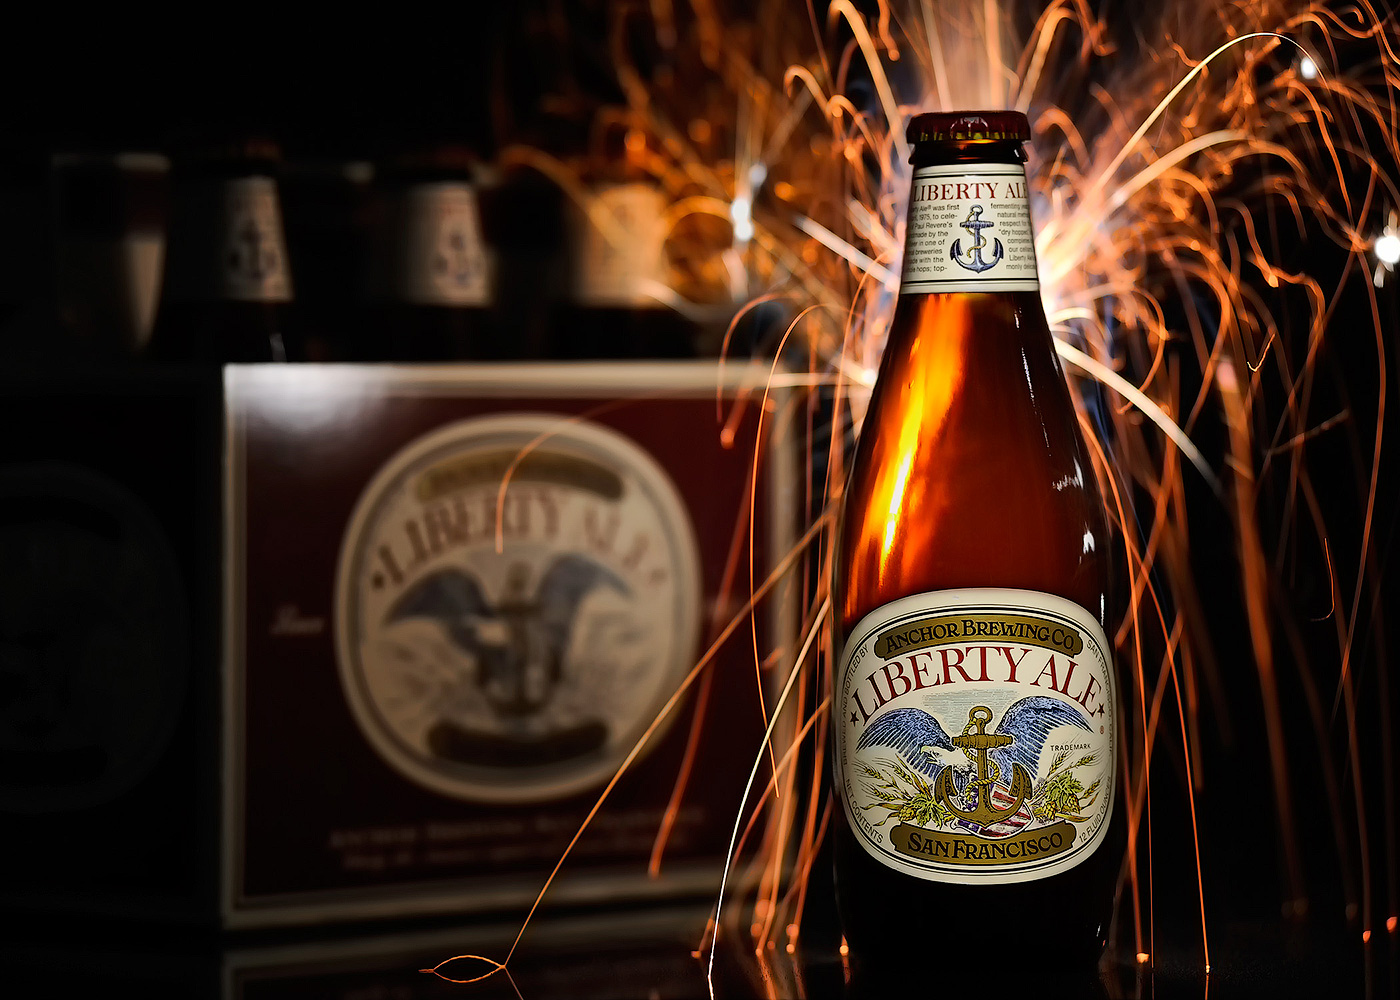 Anchor Brewing Liberty Ale. Фото: Ramiro Silva